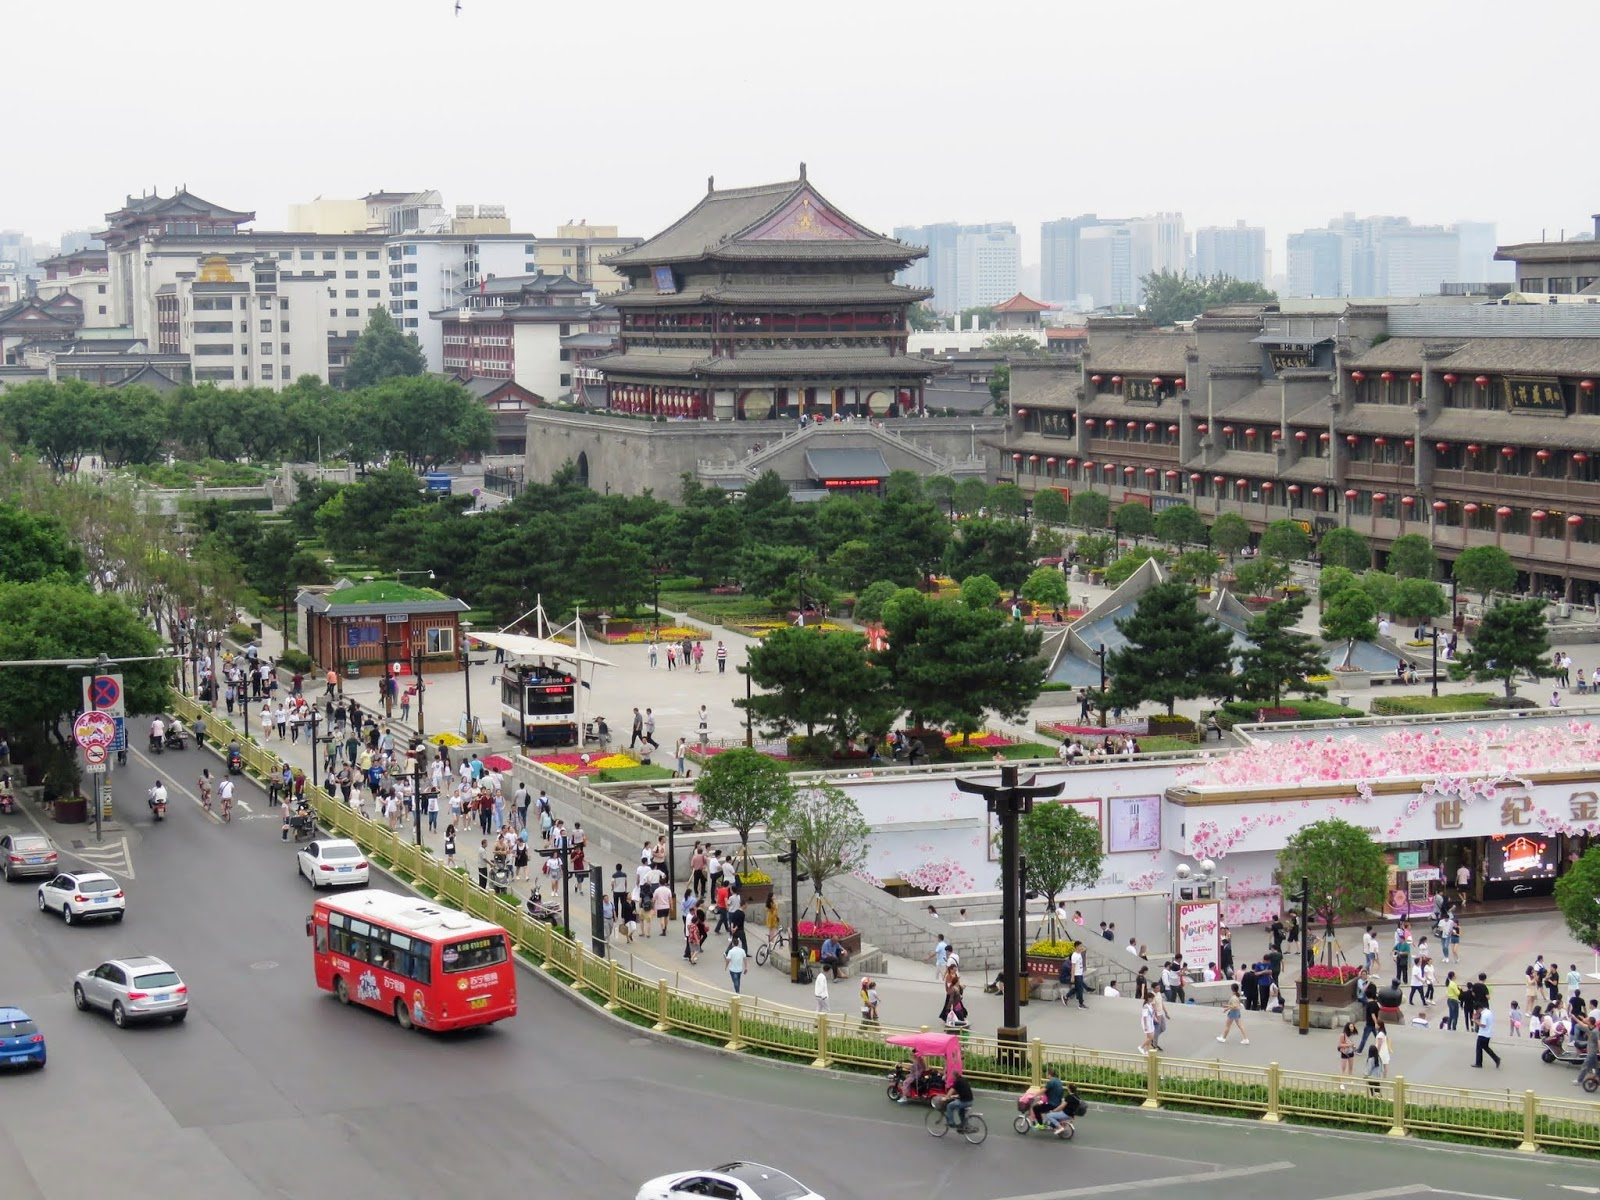 7 Days Inn Xian Bell Tower Brach Things To Do In Xian China After Visiting The Ancient Terracotta